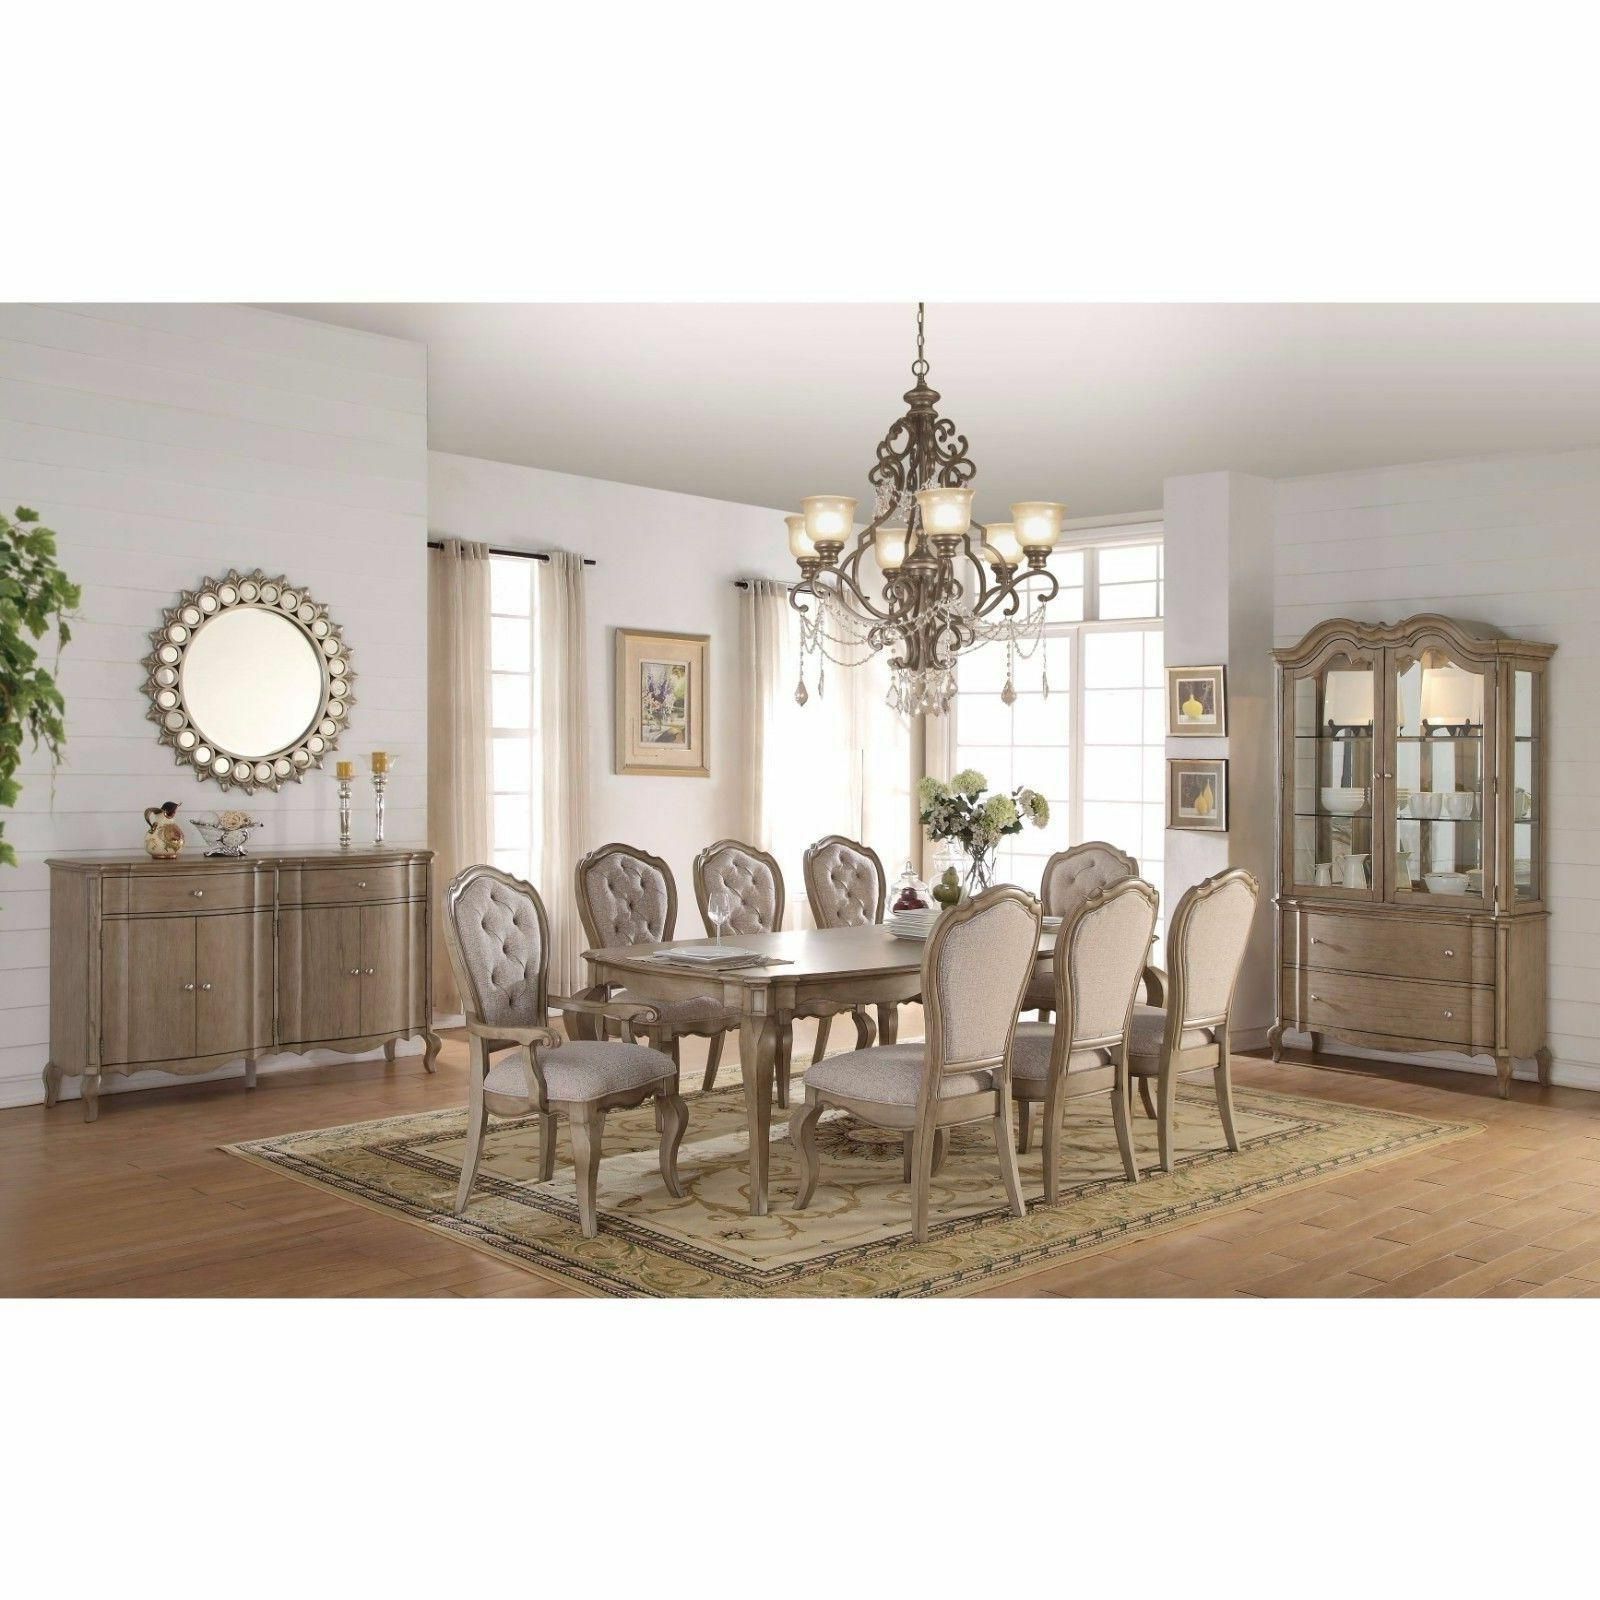 chelmsford 9 piece dining table set 66050